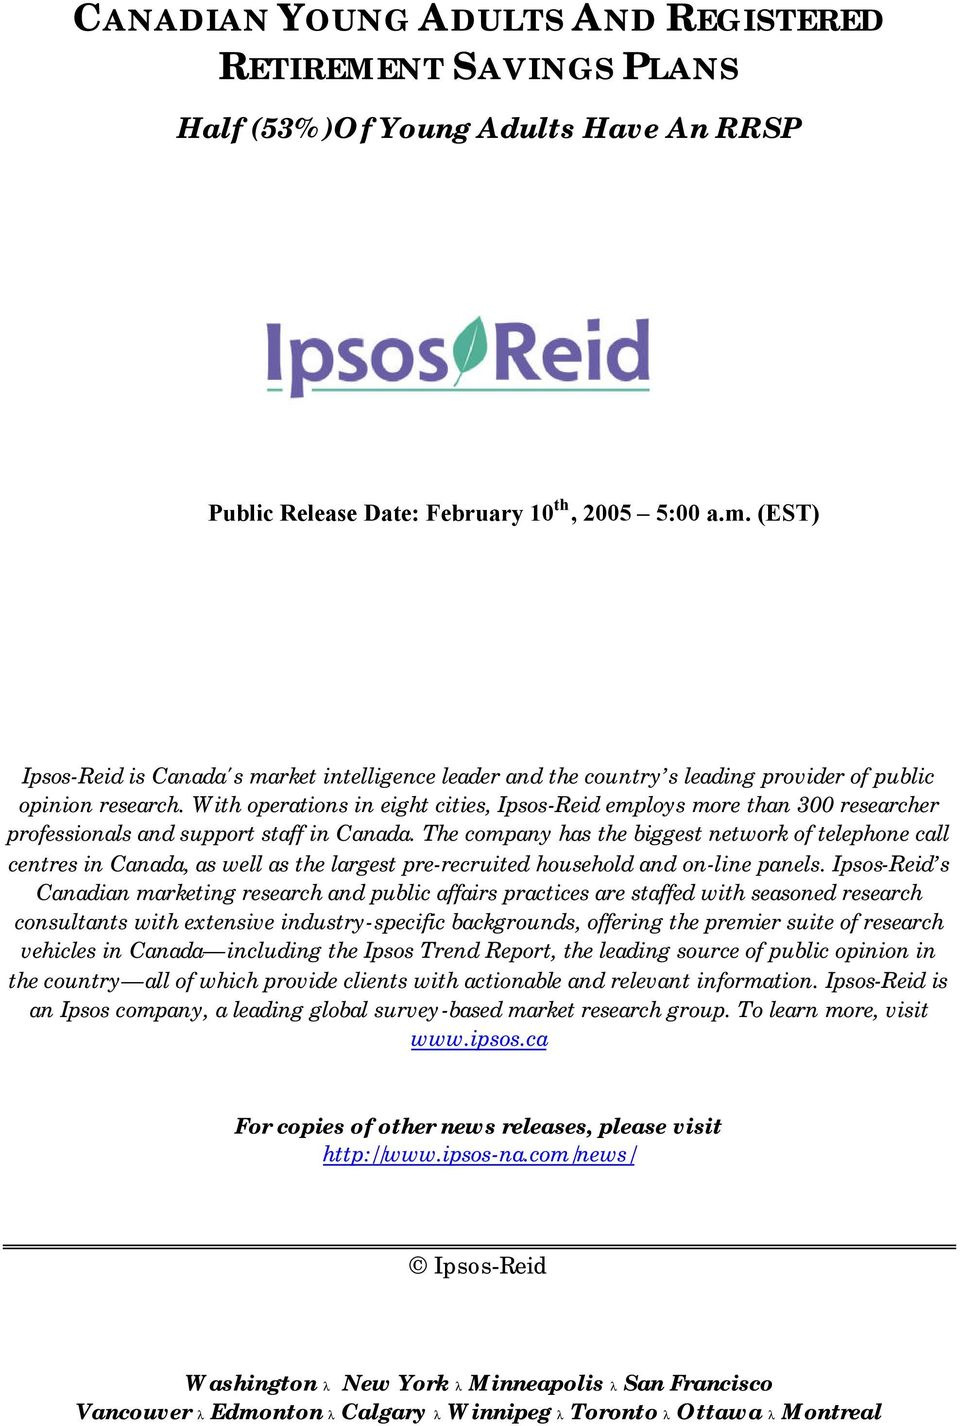 With operations in eight cities, Ipsos-Reid employs more than 300 researcher professionals and support staff in Canada.